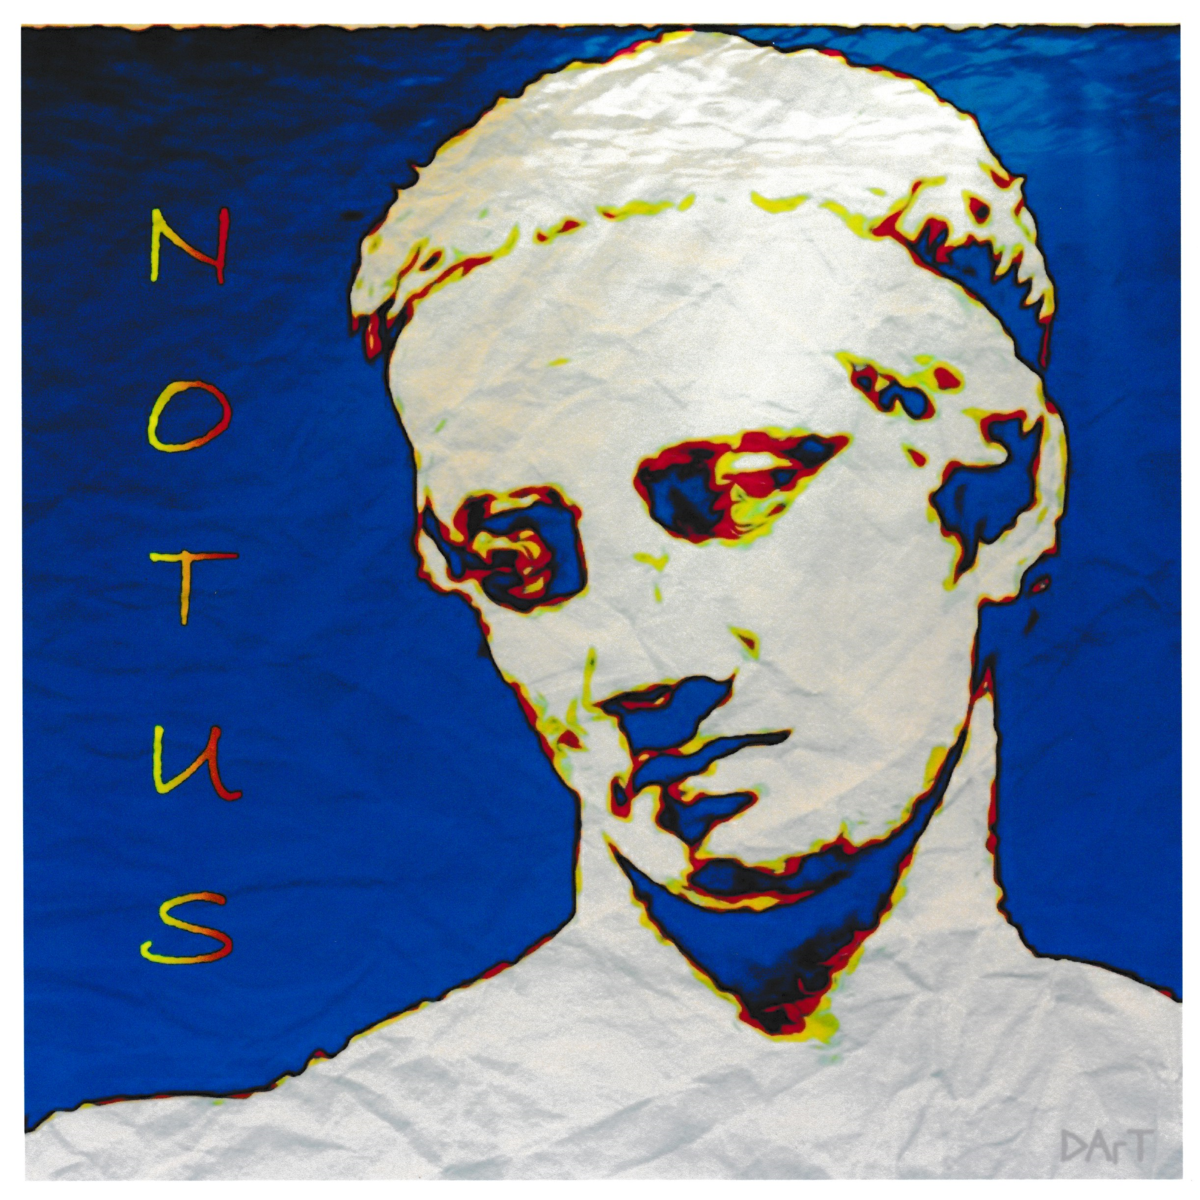 Notus, Greek God of the South Wind, Giclee Print - product images  of